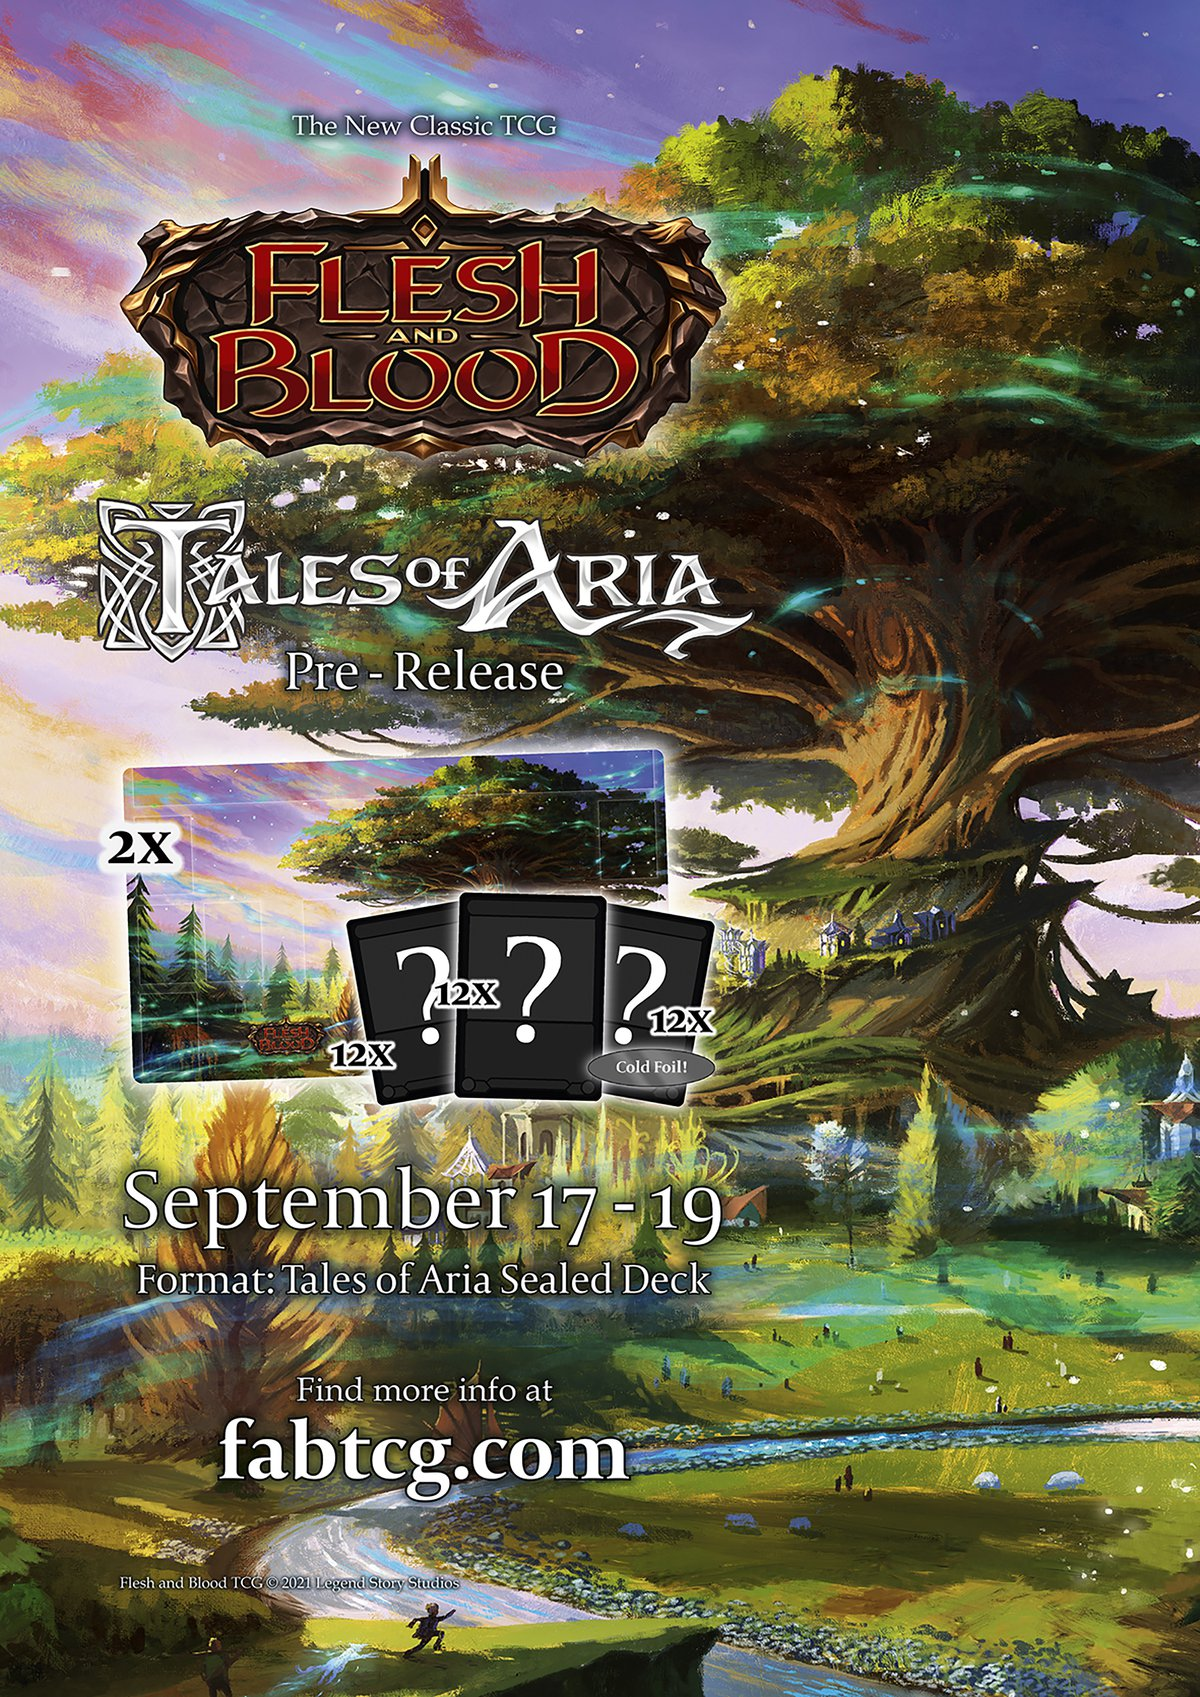 toa_pre-release_poster_5mb.jpg